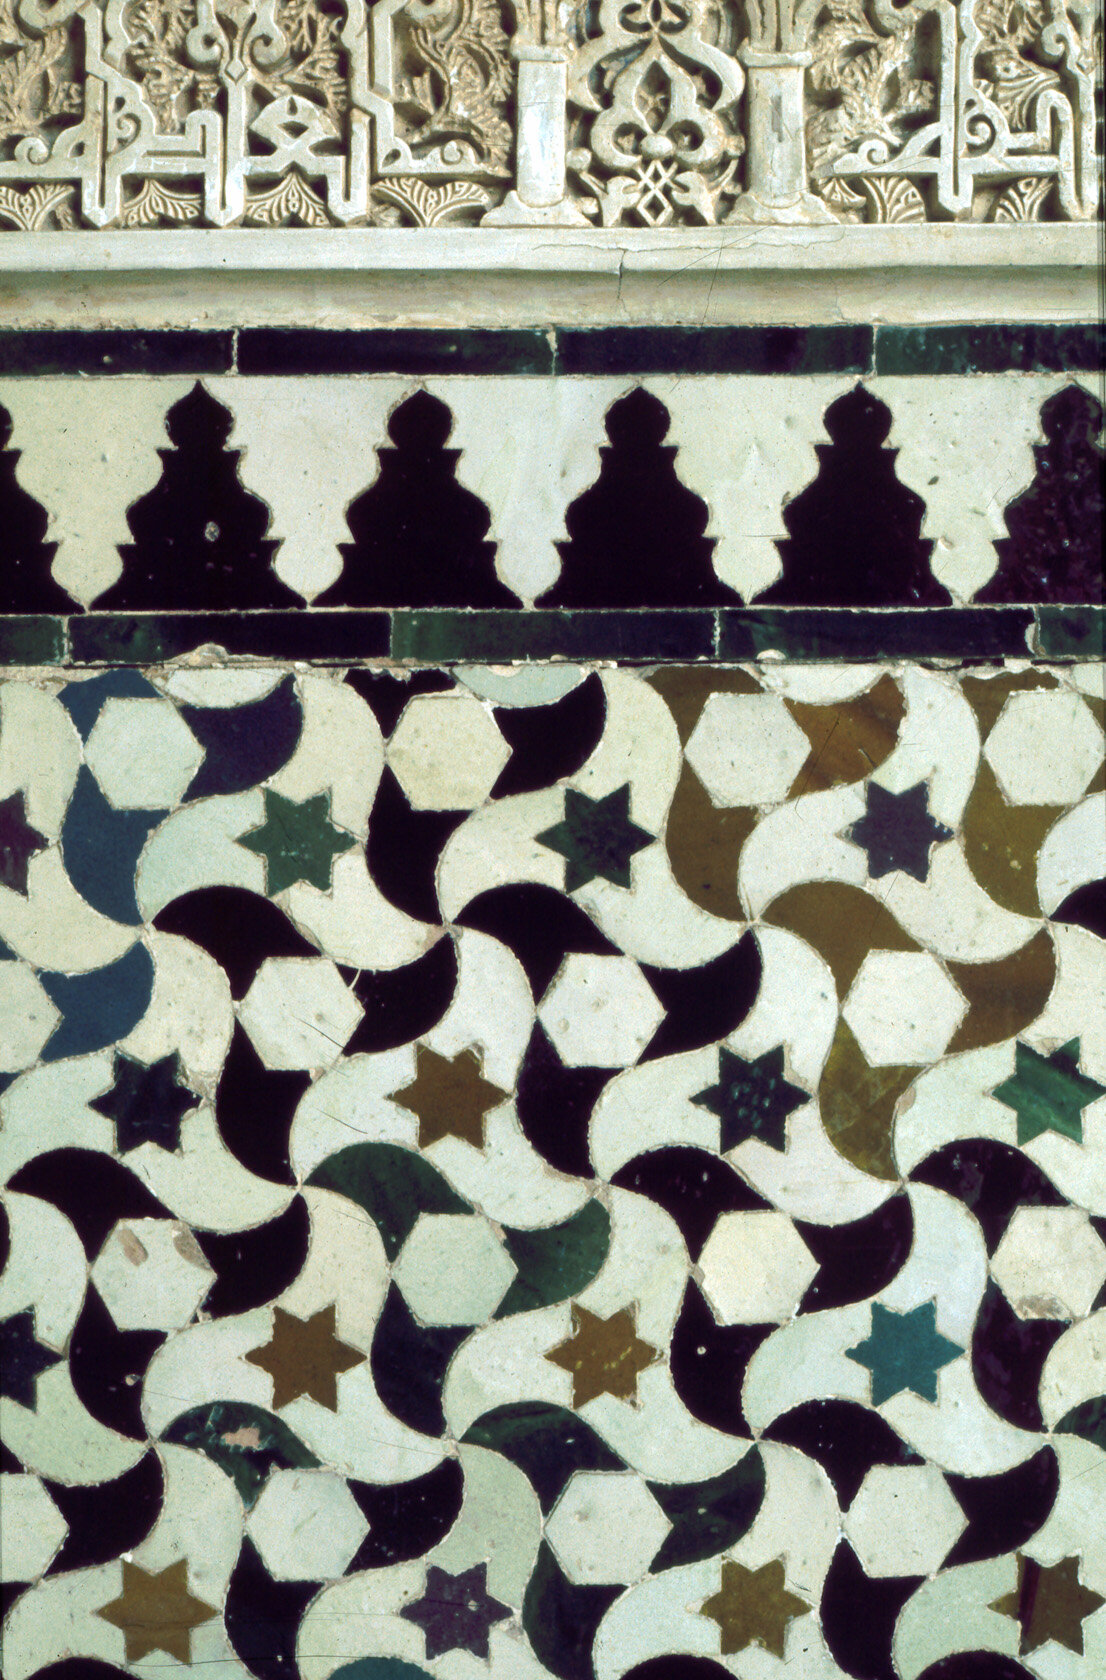 Tessellation pattern at the Alhambra Palace in Granada, Spain  Wade Photography SPA0110:  https://patterninislamicart.com/archive/browse/monuments/111/alhambra/spa0110